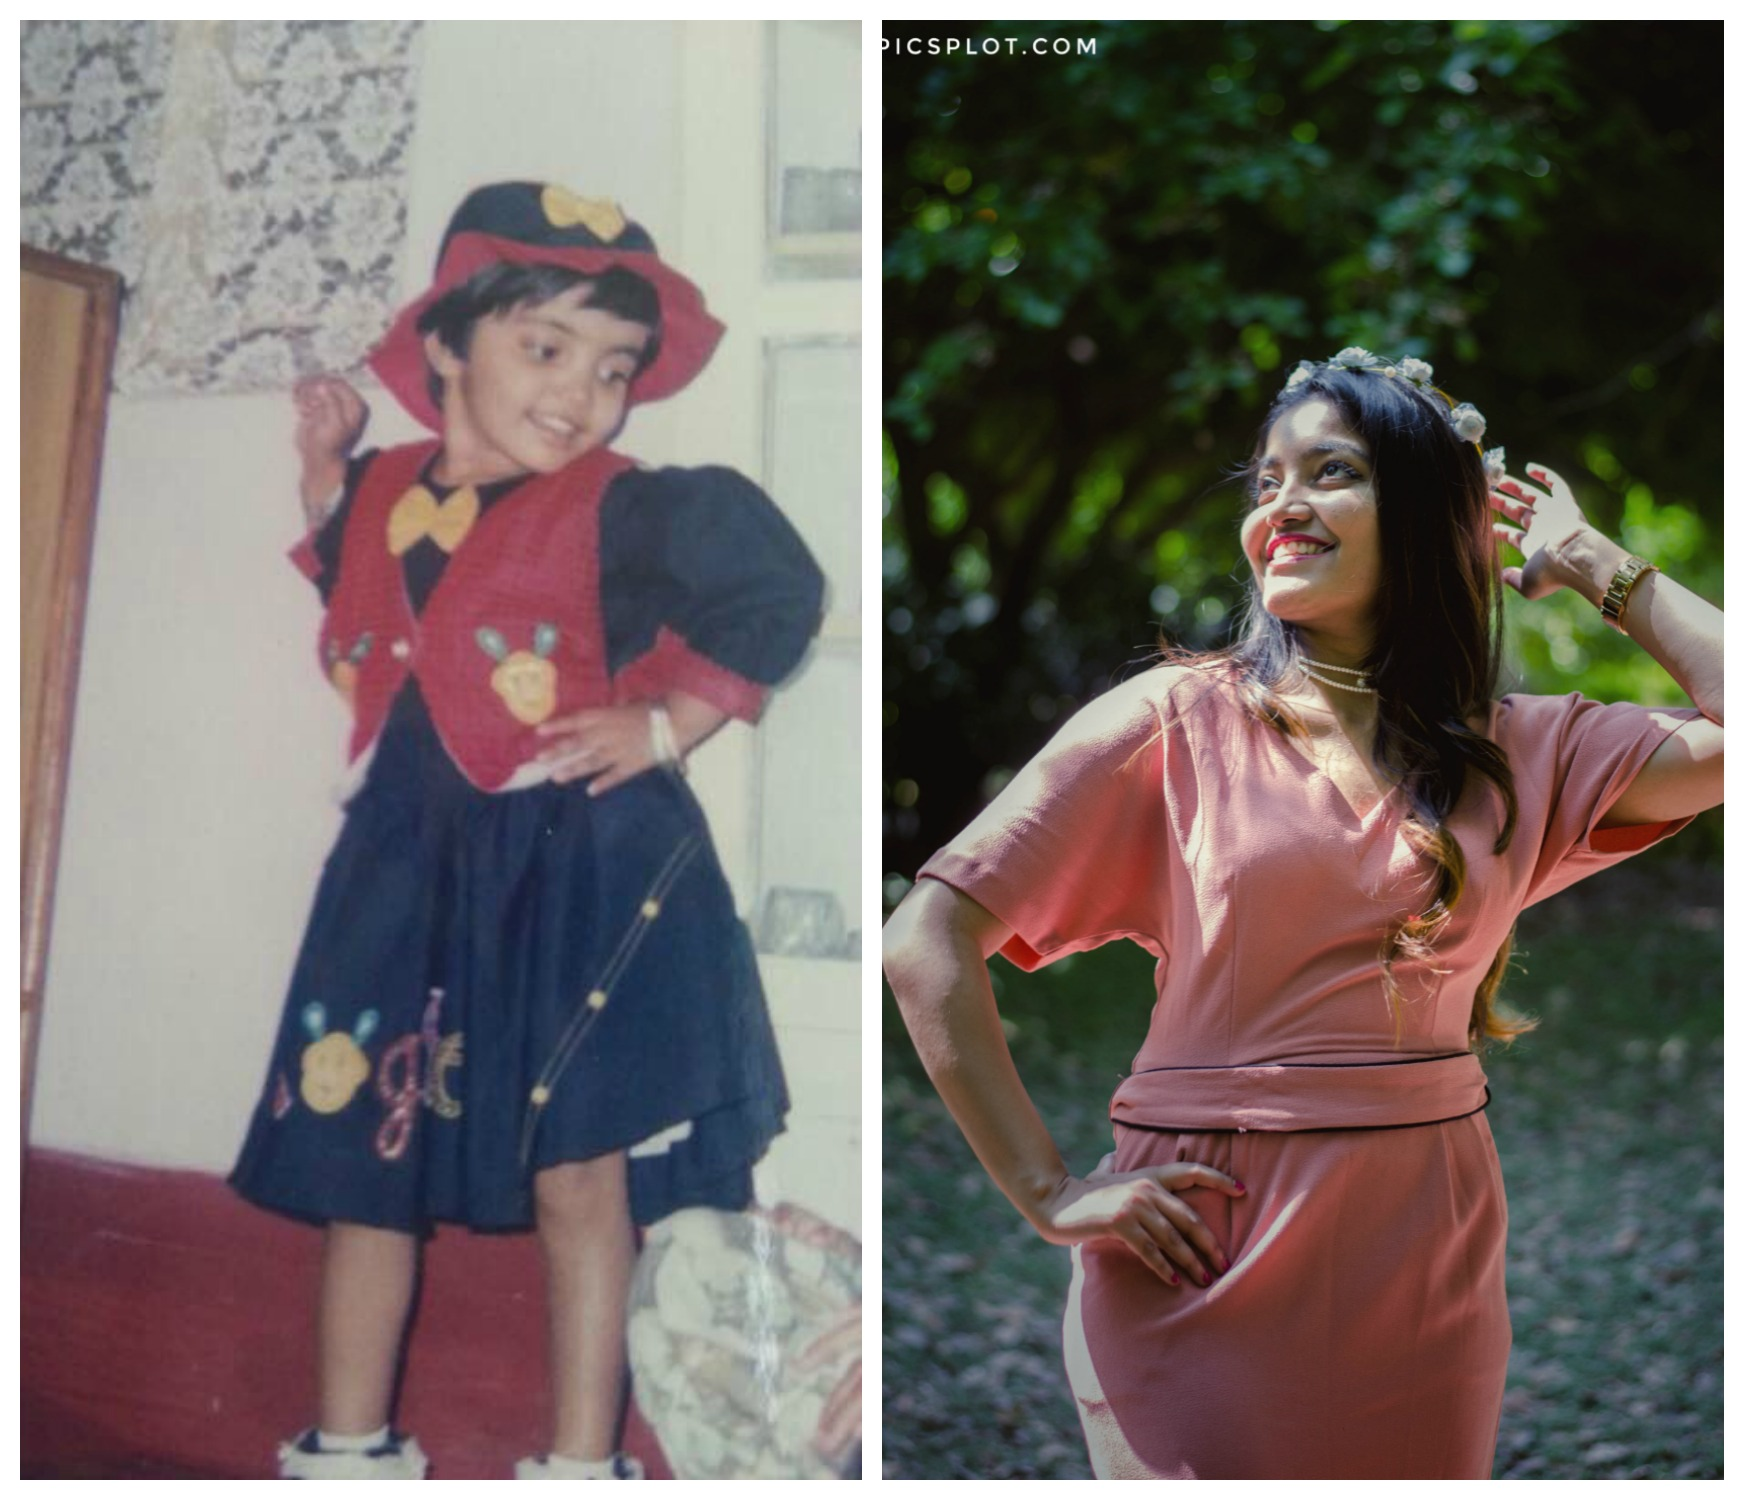 princy mascarenhas fashion blogger the jeromy diaries childhood picture